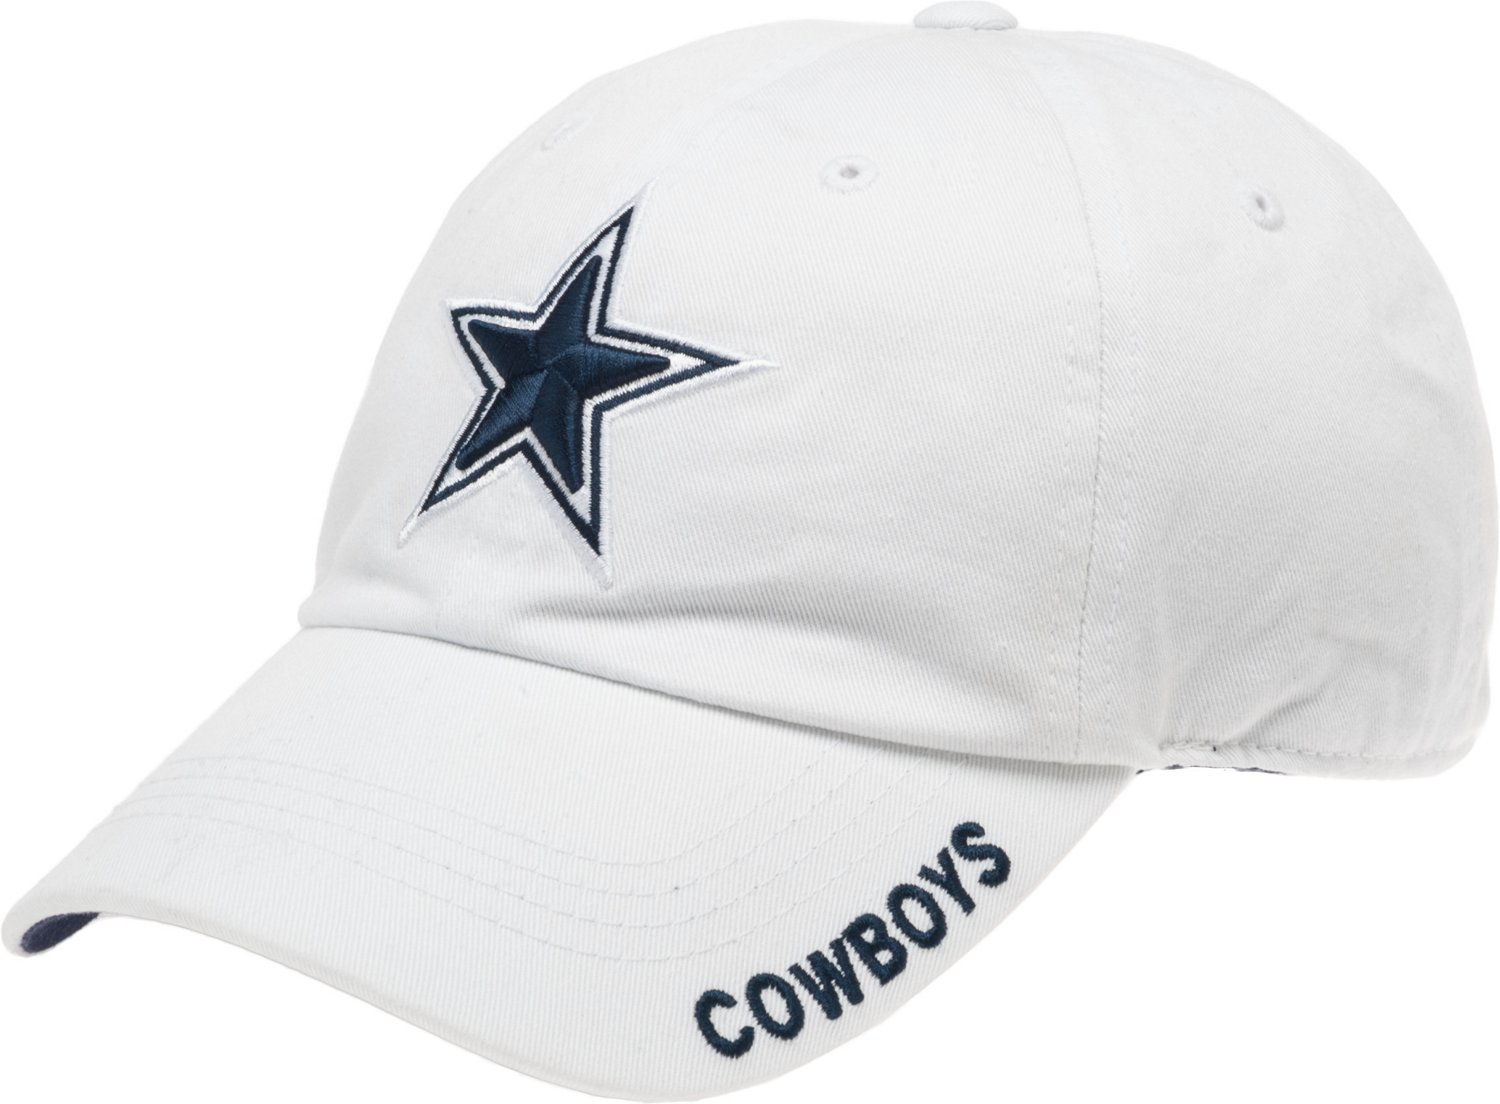 fa91b85b820 Display product reviews for Dallas Cowboys Adults  Basic Slouch Cap